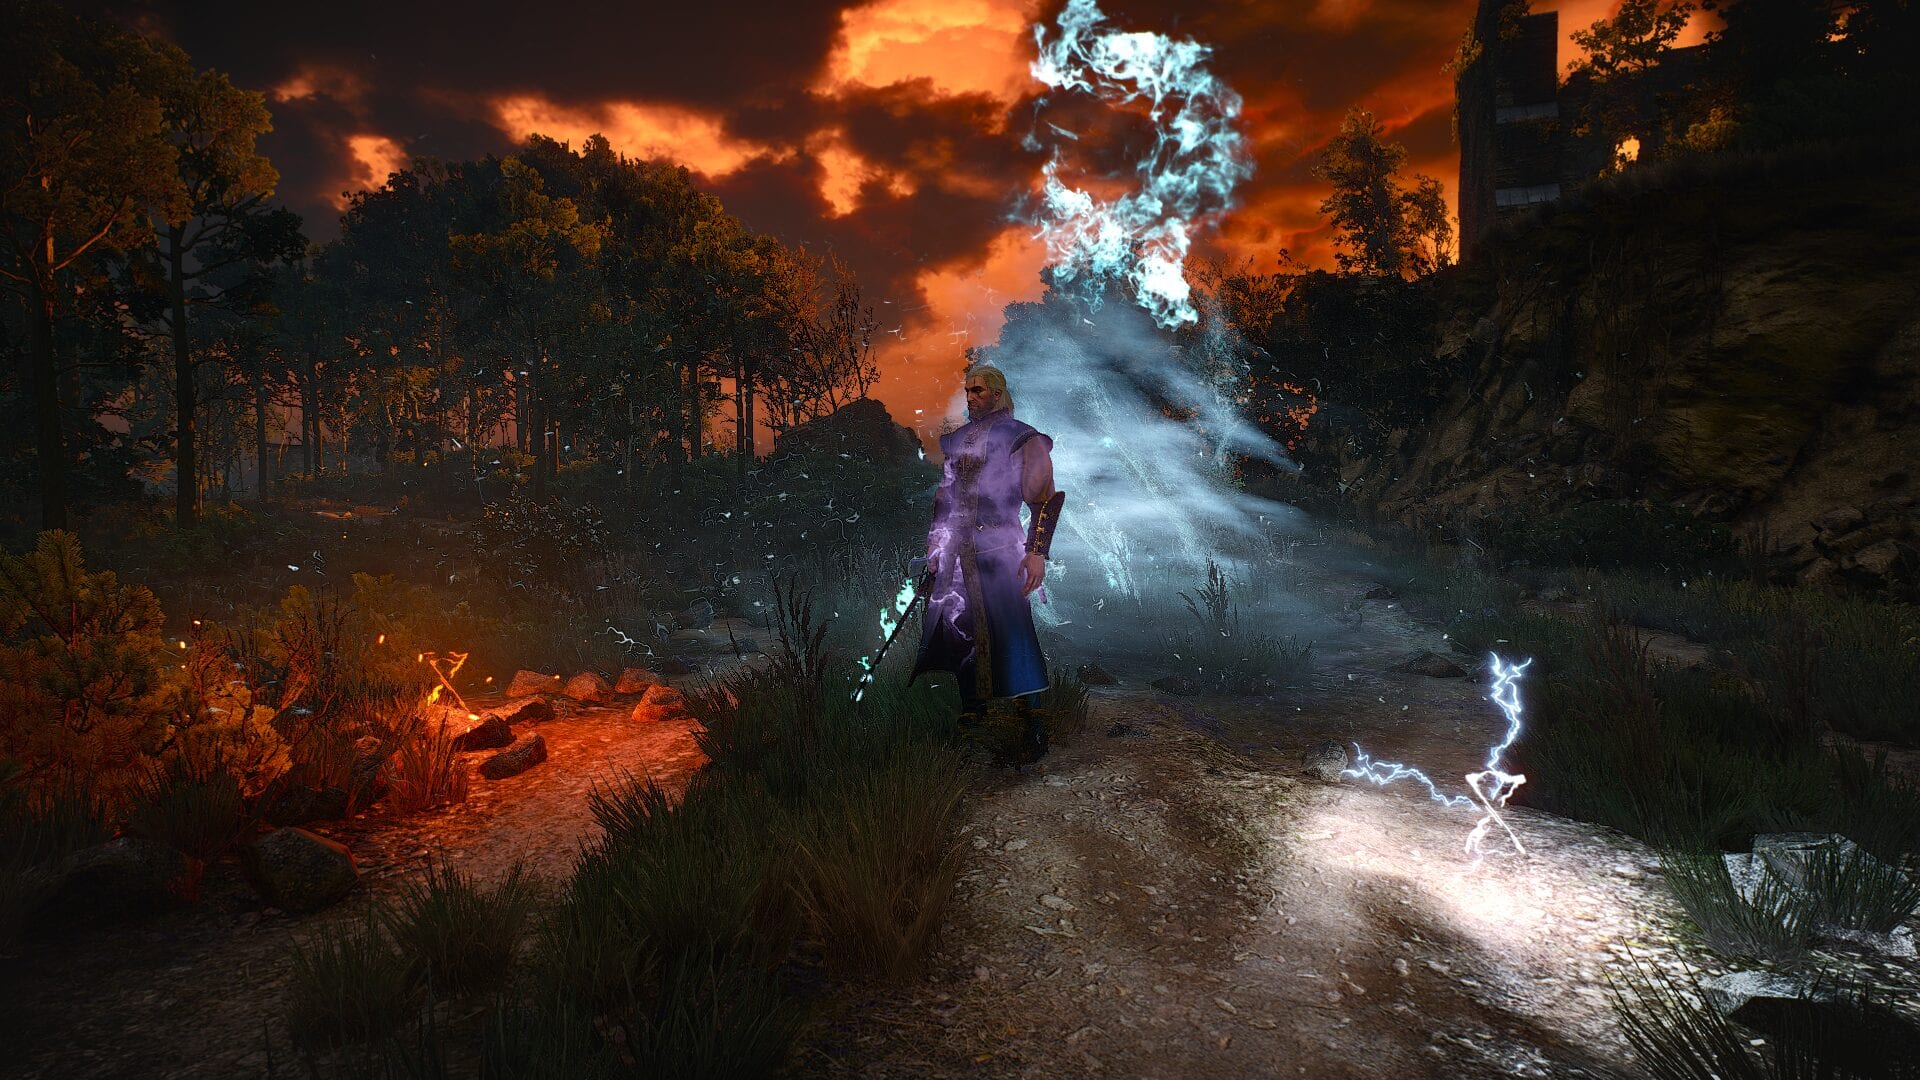 witcher 3 mods, magic spells